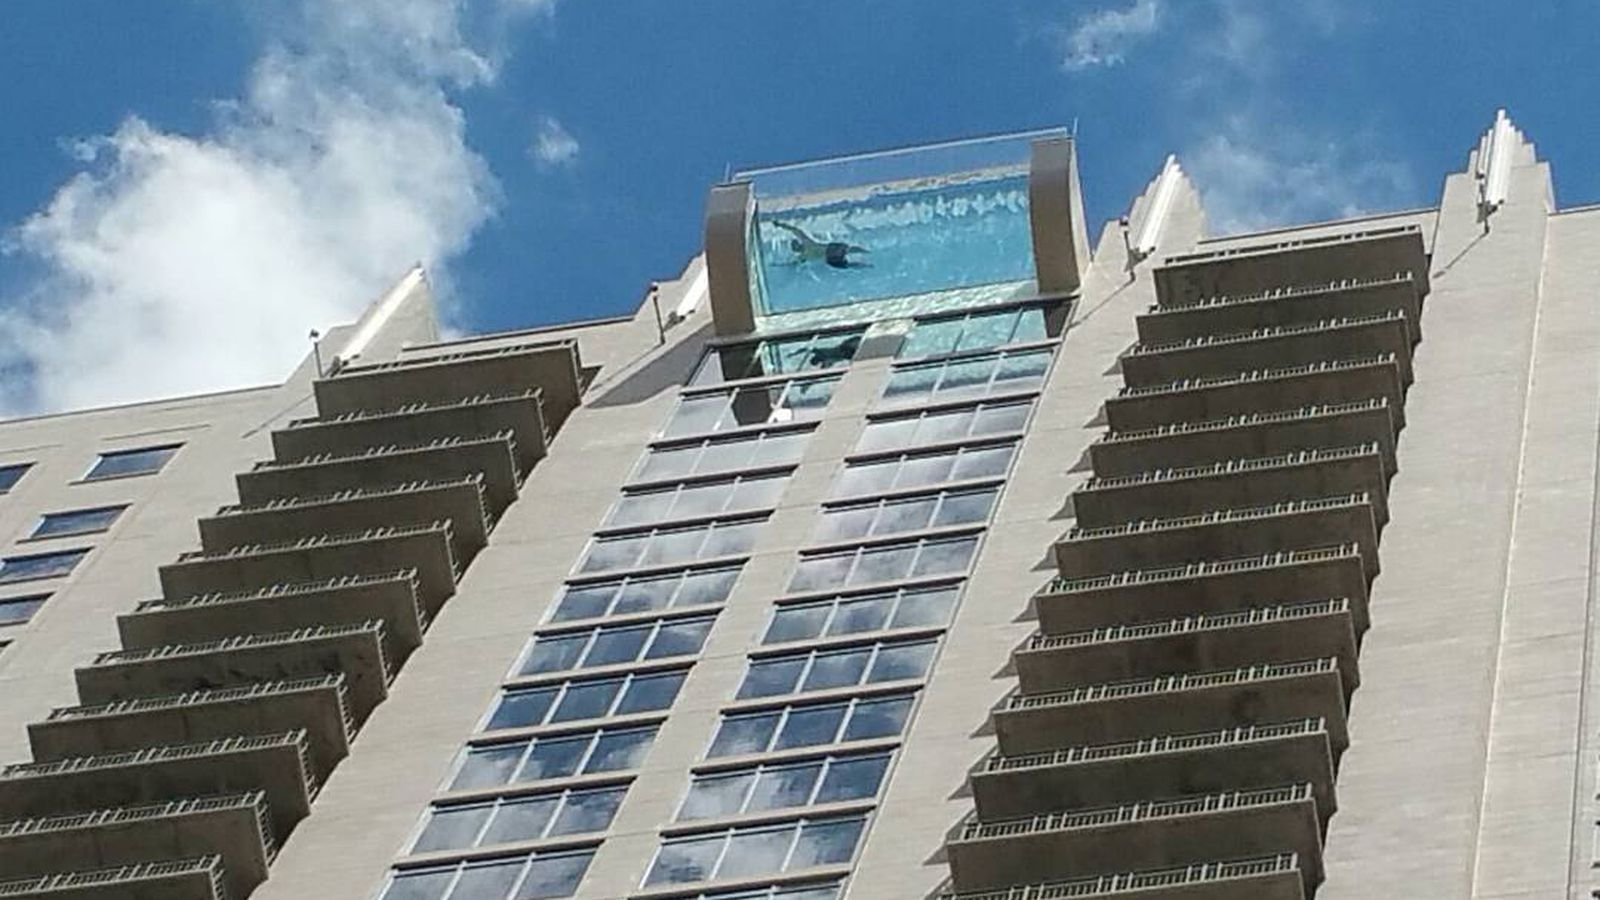 u2018sky pool u2019 at new houston high-rise hangs 500 feet above ground